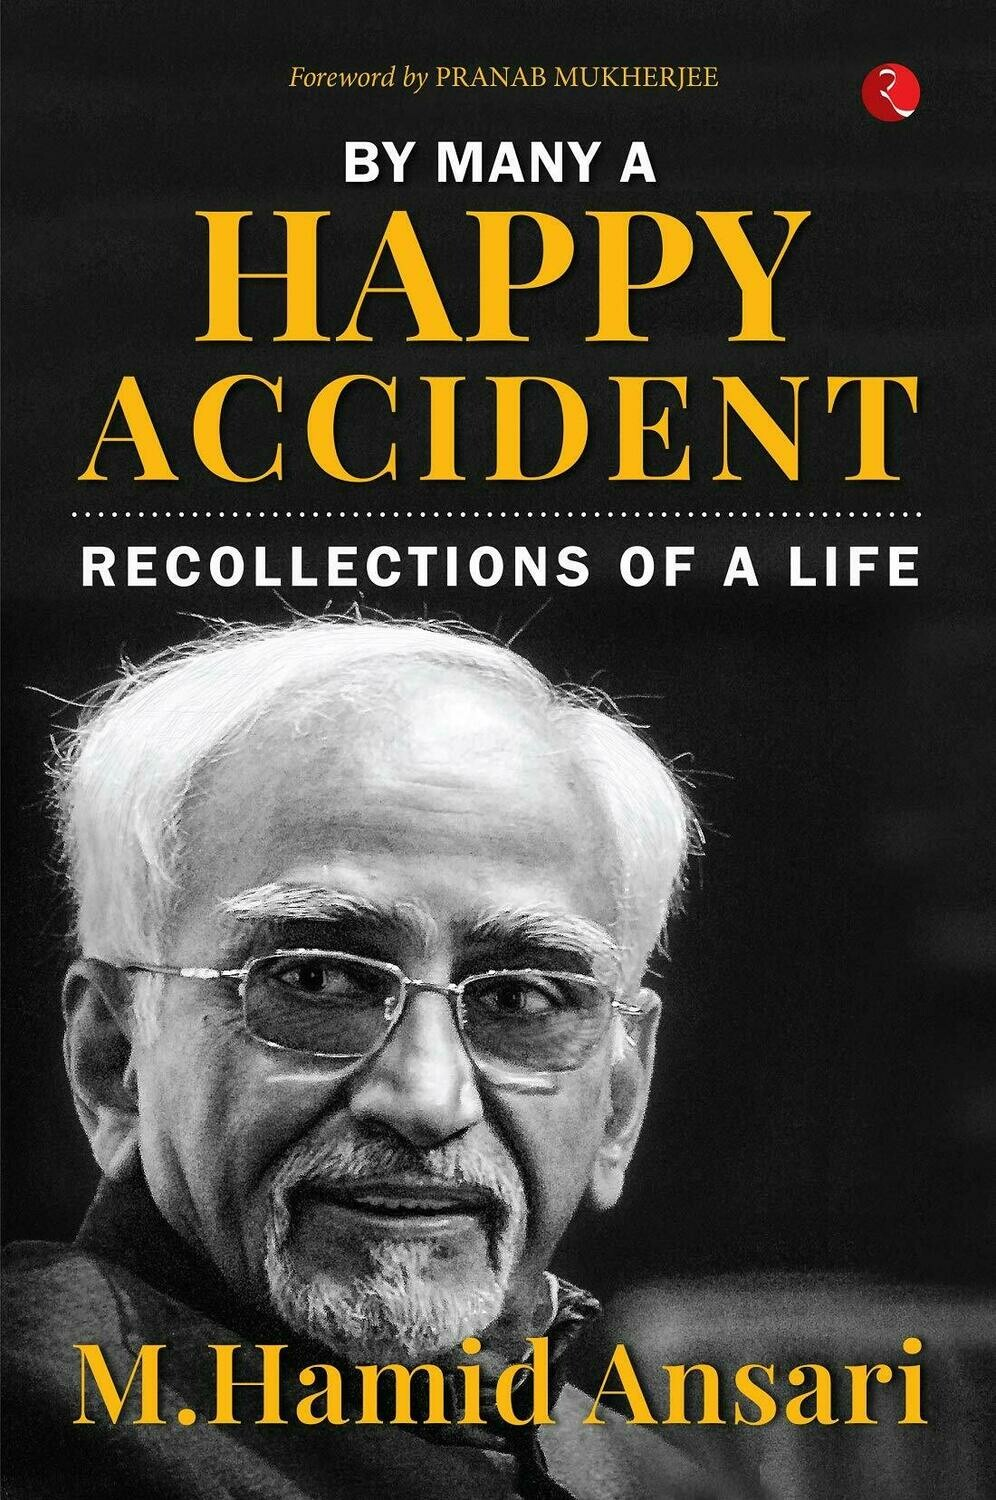 BY MANY A HAPPY ACCIDENT: Recollections of a Life